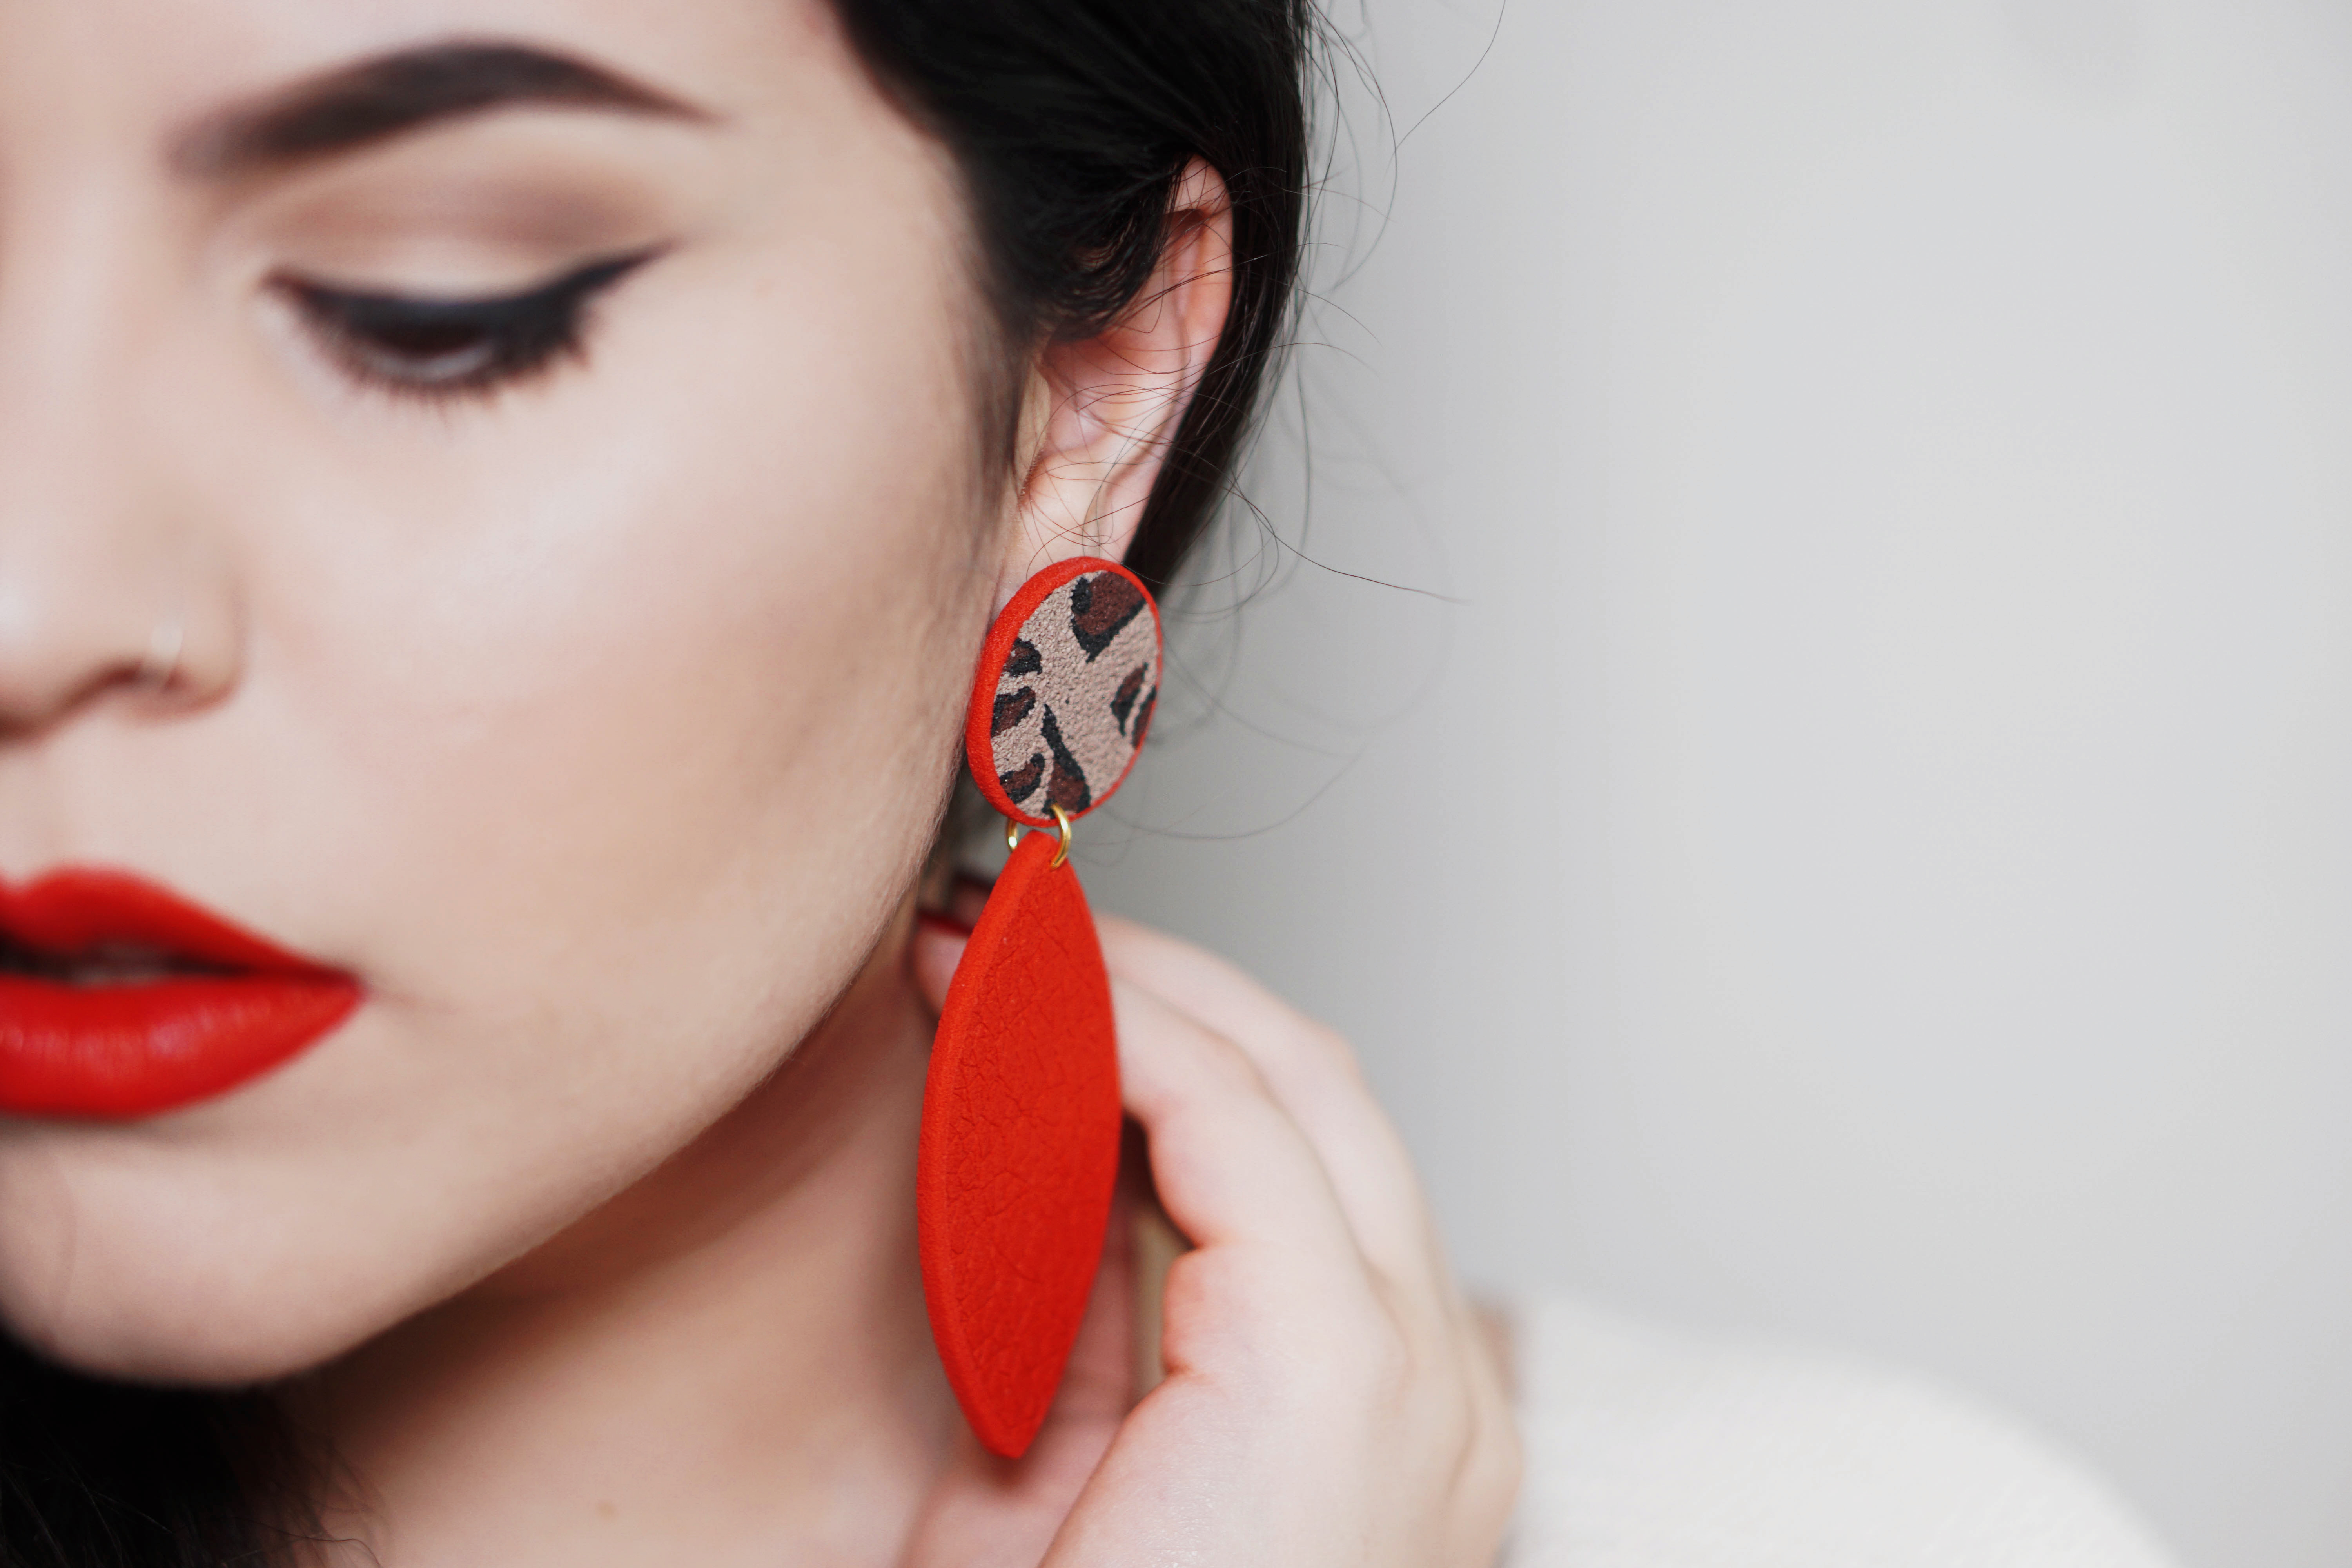 LimeLight jewelry collection by Katerina Sfinari eccentric fashion leopard earrings